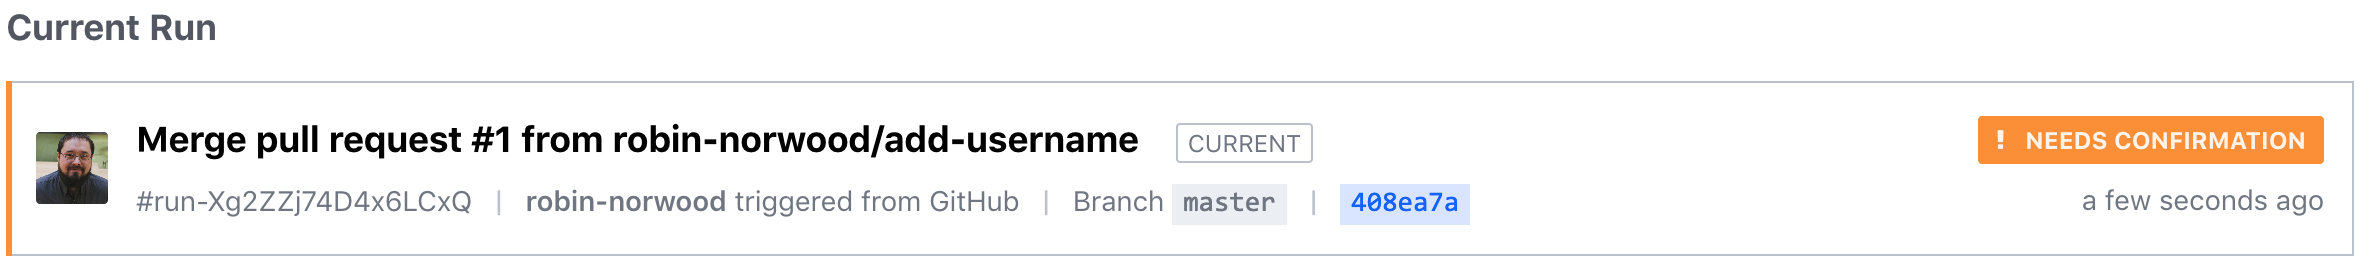 Run Triggered by Pull Request